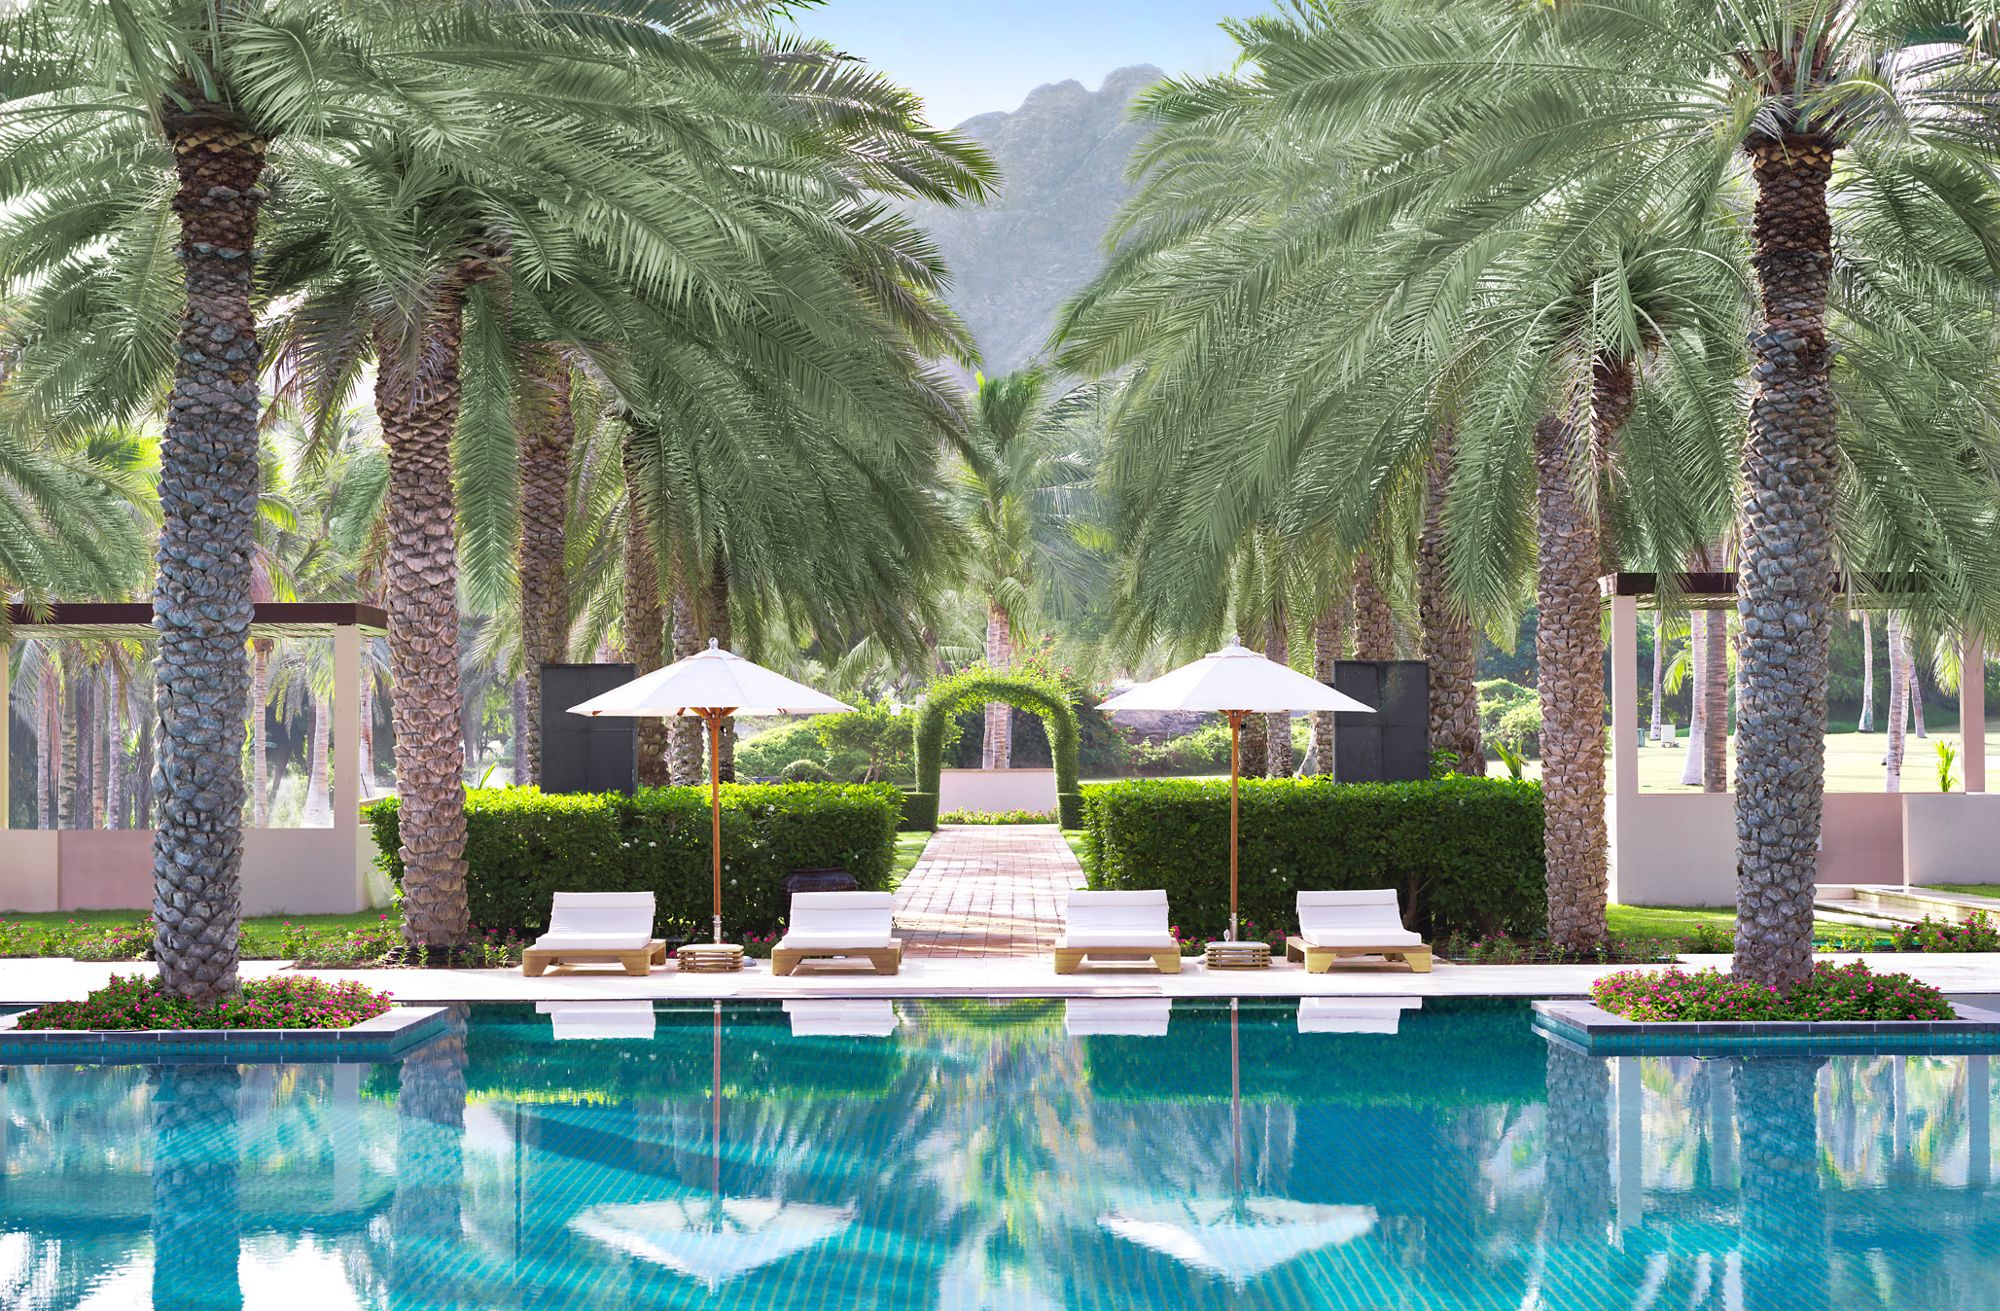 Luxury Hotels and Resorts | The Ritz-Carlton